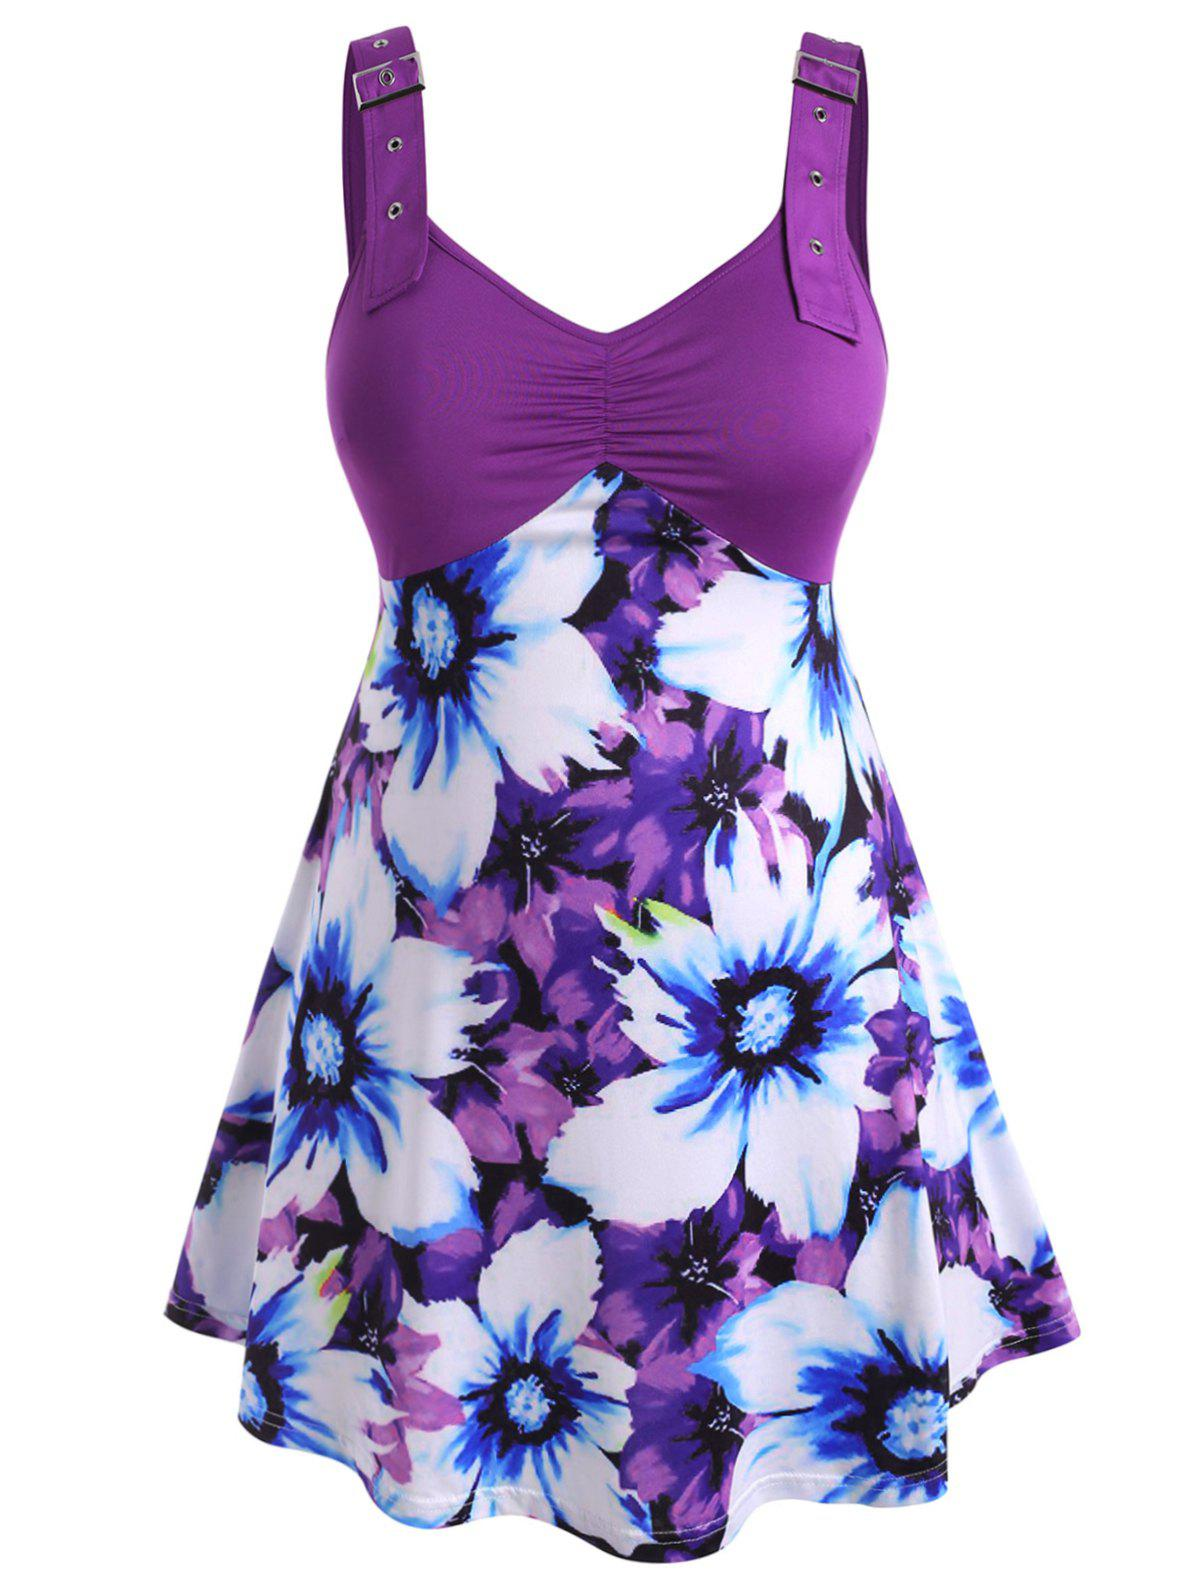 Chic Buckle Straps Gathered Front Floral Plus Size Tank Top